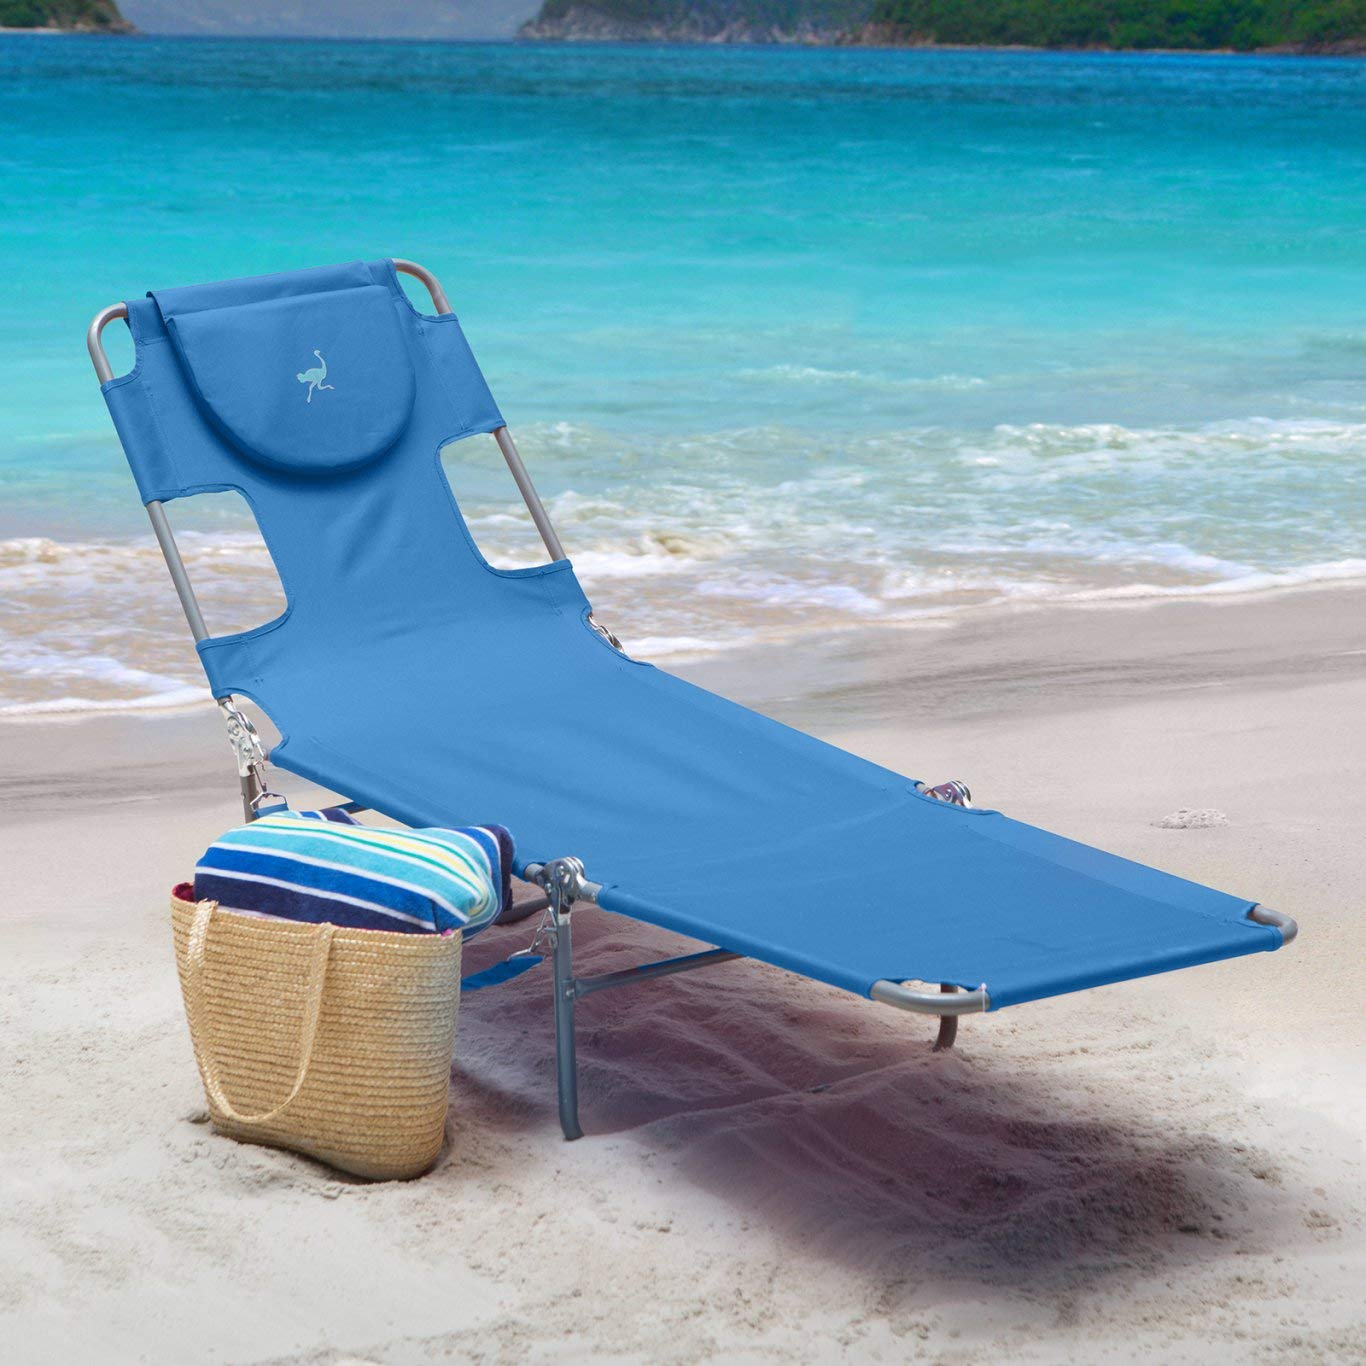 Ostrich Folding Chaise Lounge 72L x 22W x 12H in, 10 to 12 lbs. Weight Capacity 250 lbs (Blue) by Ostrich